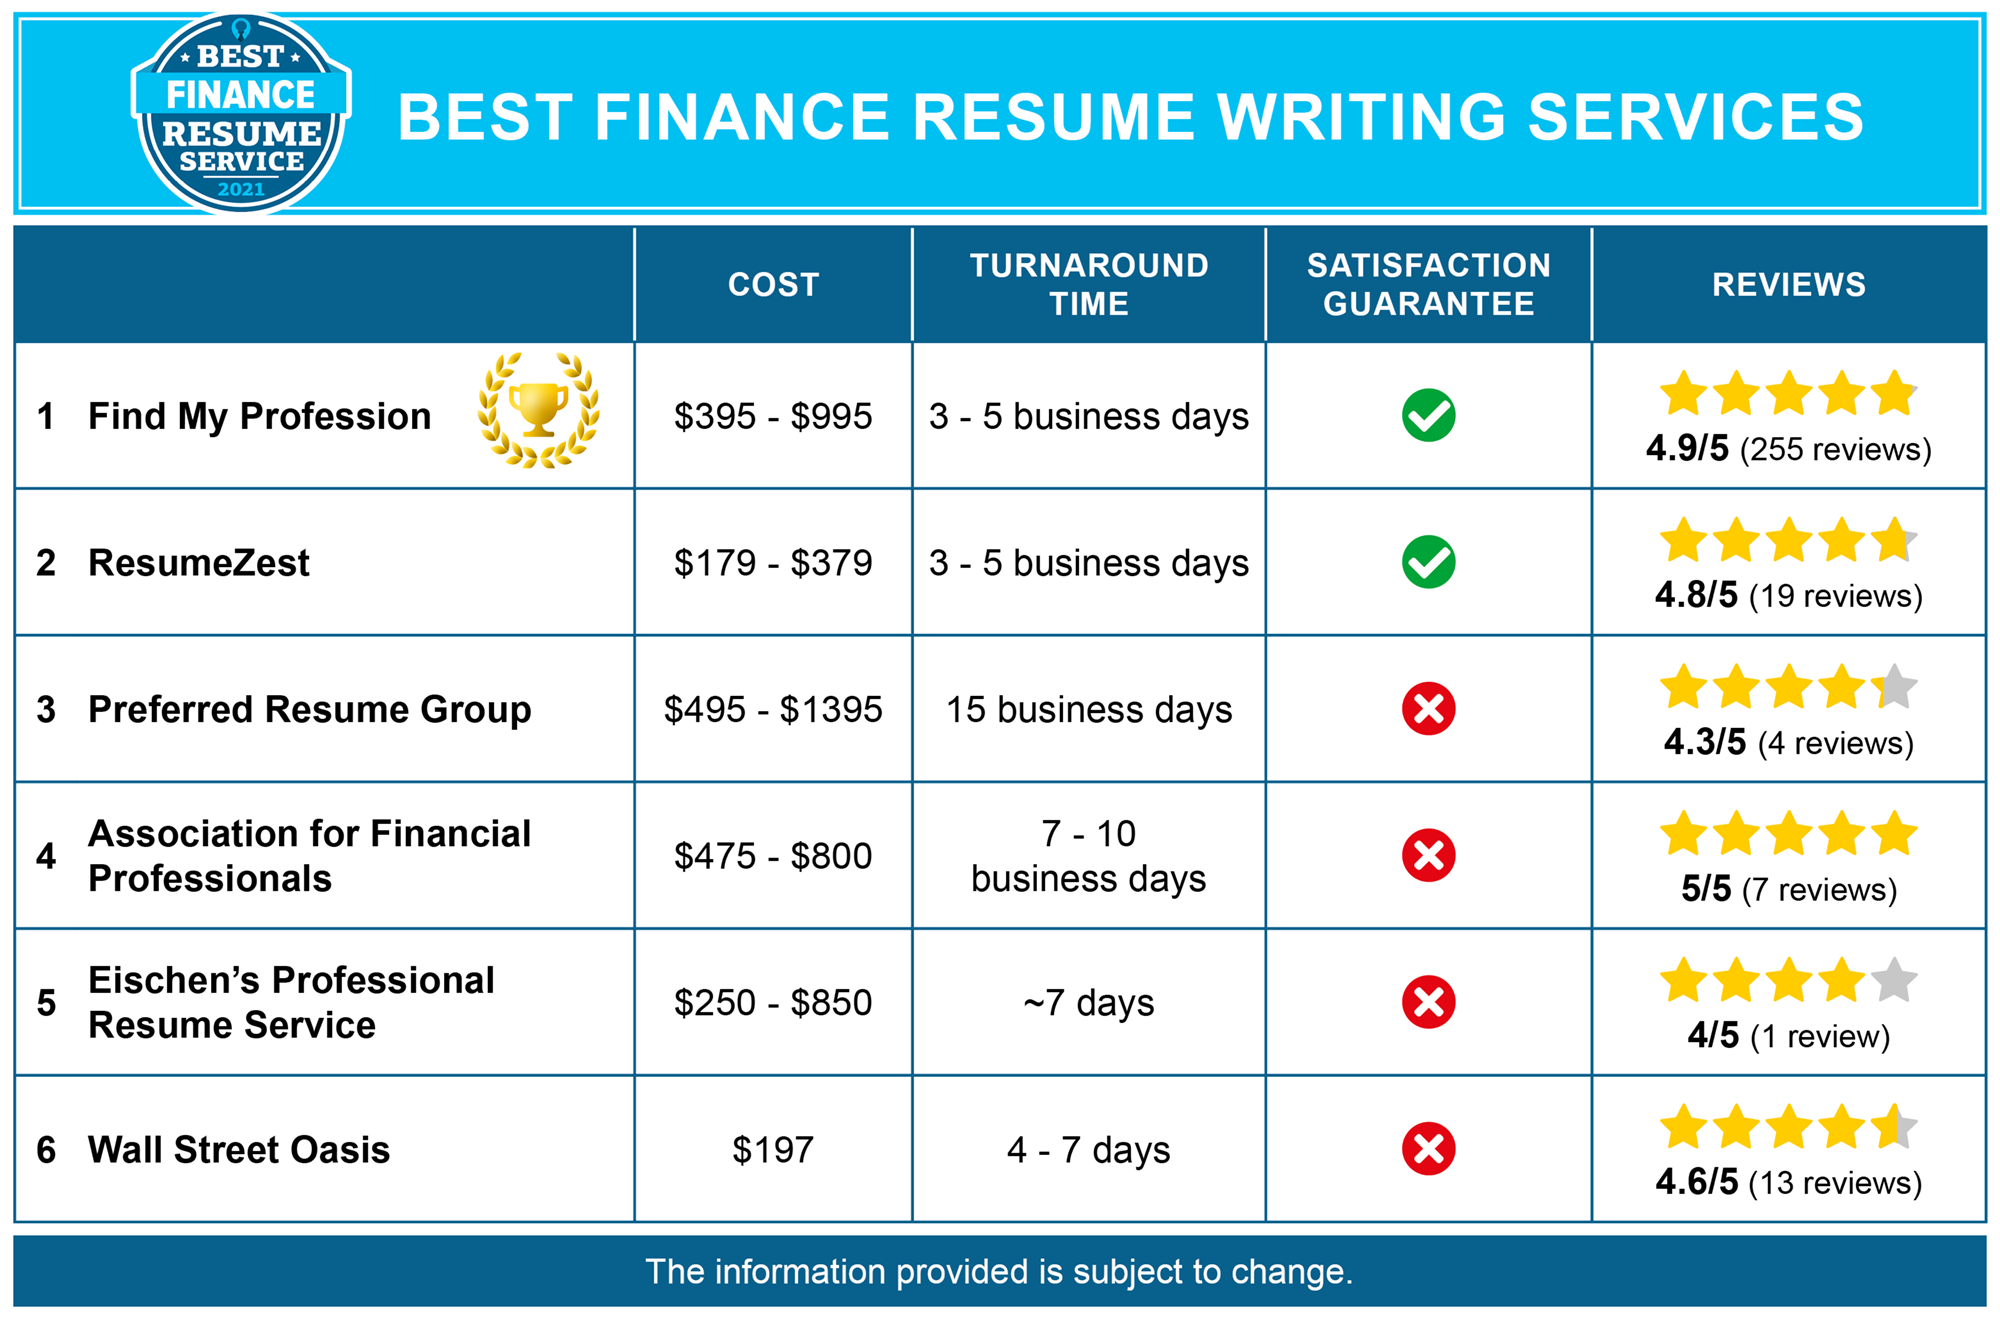 6 Best Finance Resume Writing Services